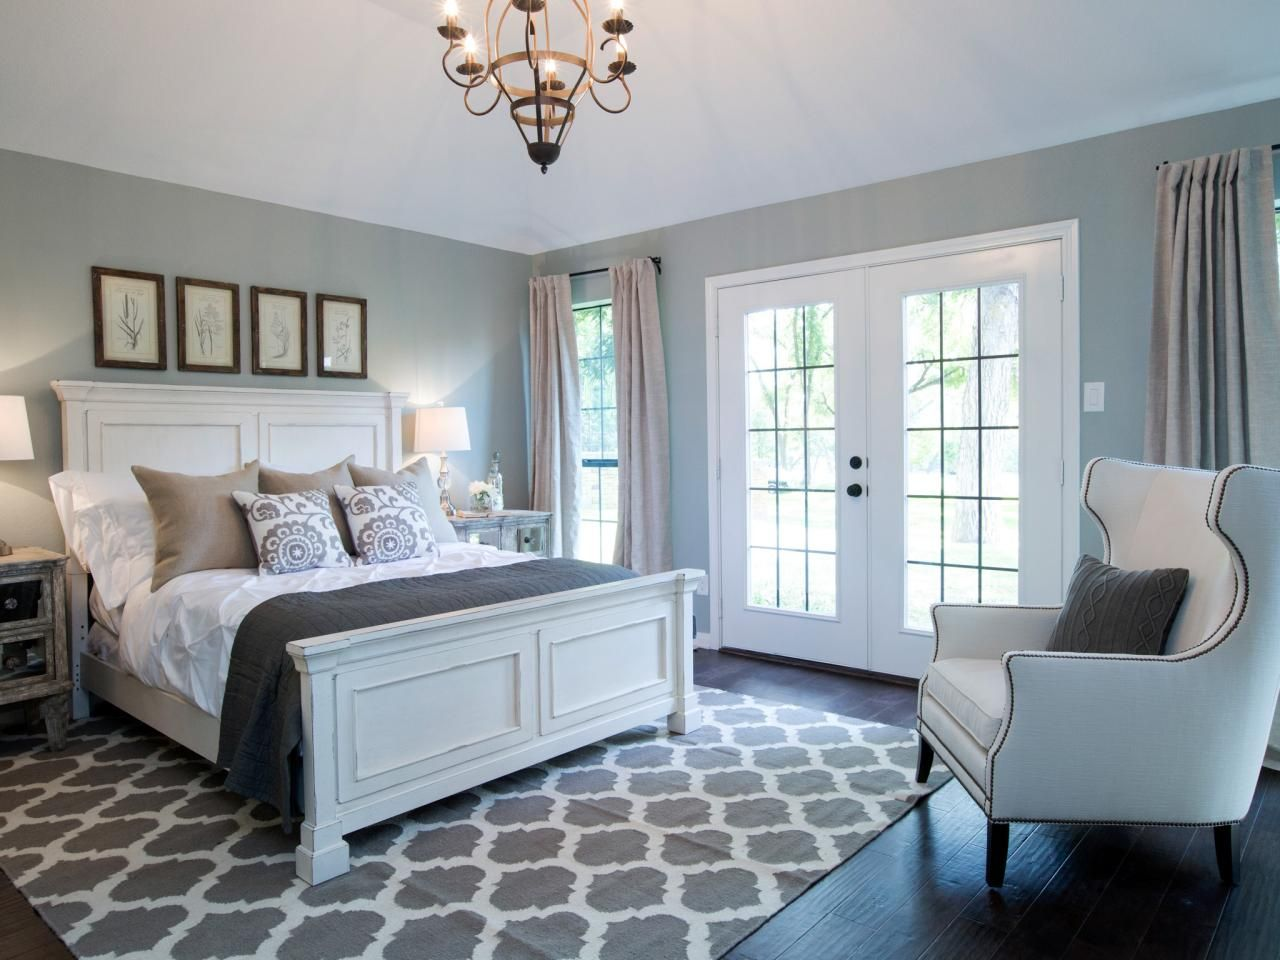 Gentil Pretty And Relaxing Master Bedroom By Fixer Upper. Farmhouse But Not Too  Country #bedroomdecor